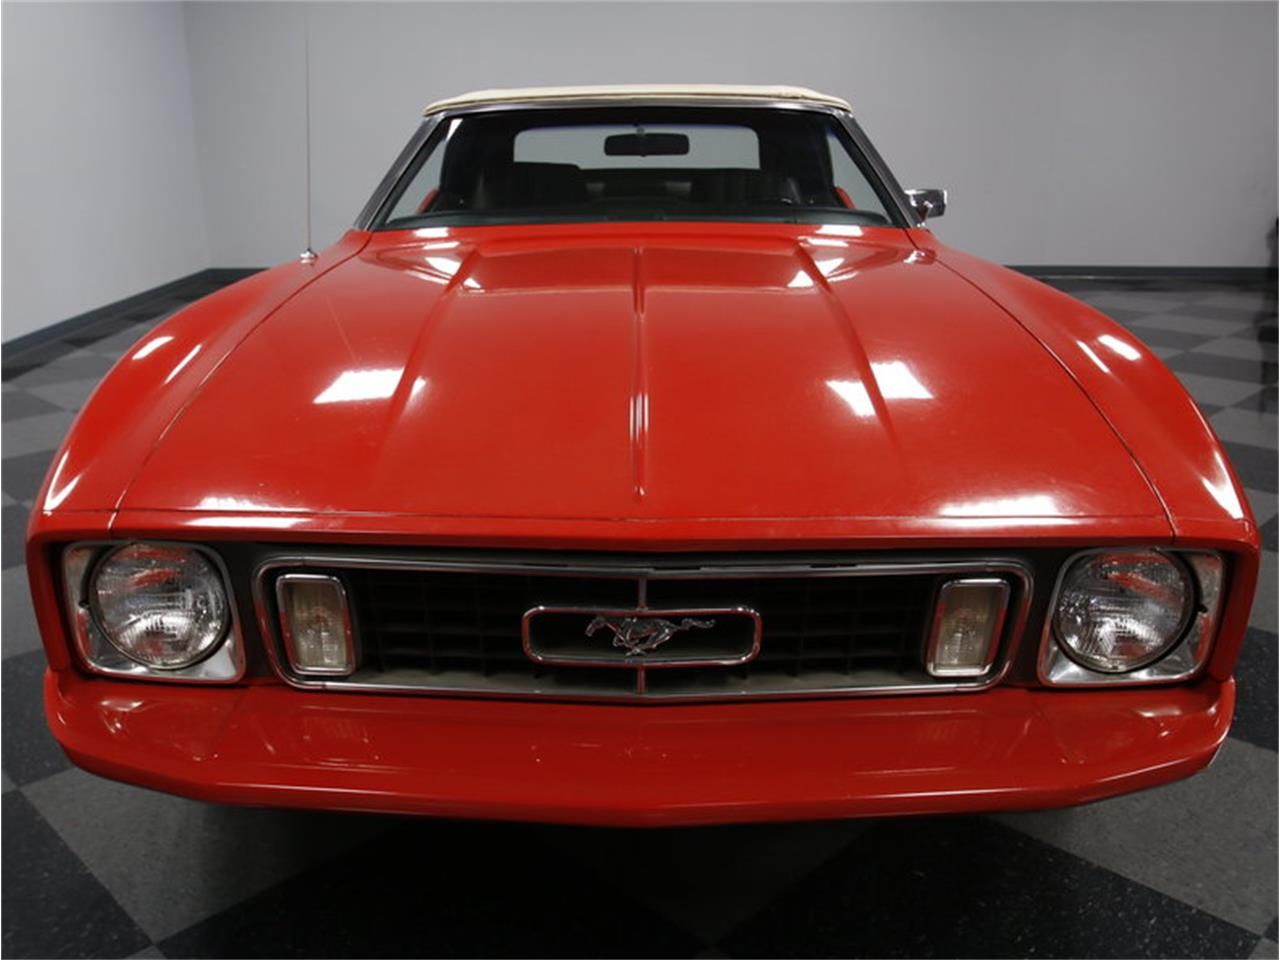 Large Picture of '73 Mustang 351 Cobra Jet located in North Carolina - KISW